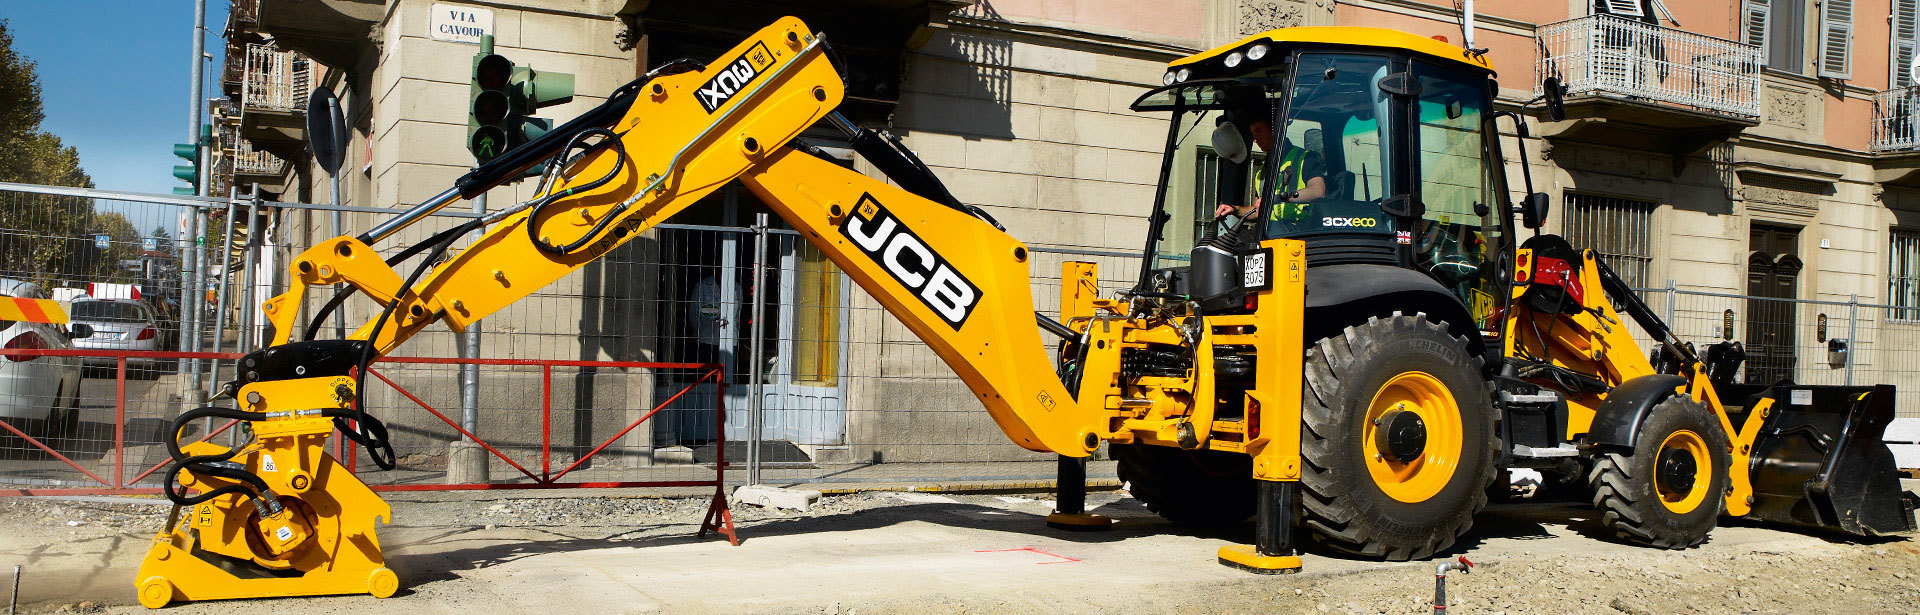 22 Tonne Excavator For Sale 2